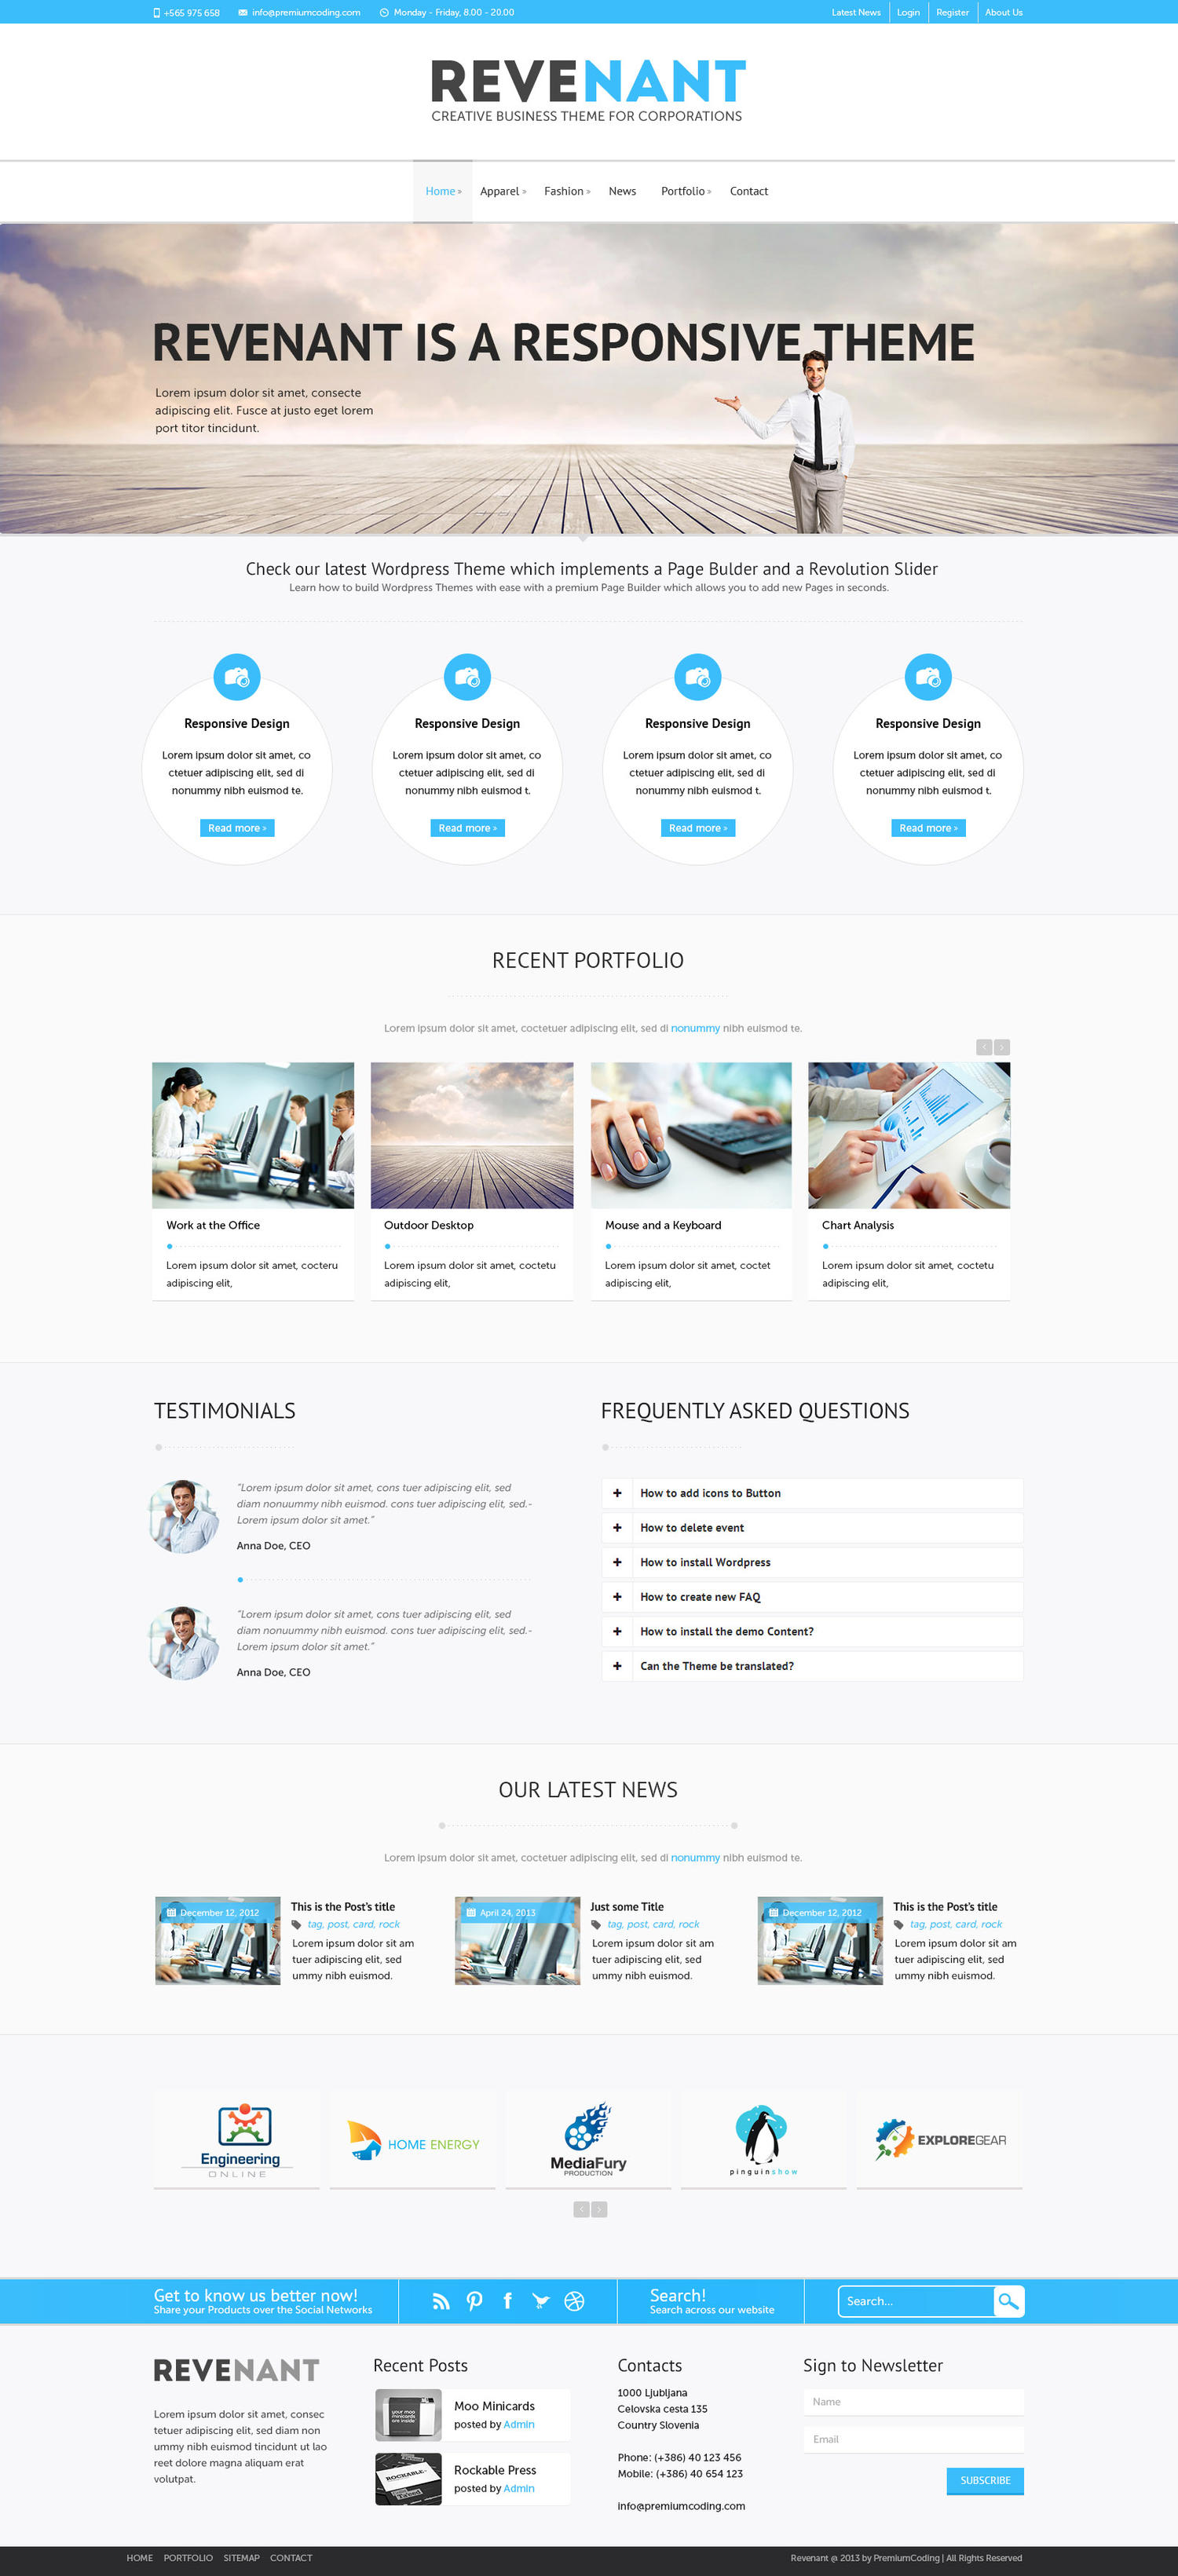 Premium Design of Home Page by gljivec - 8432